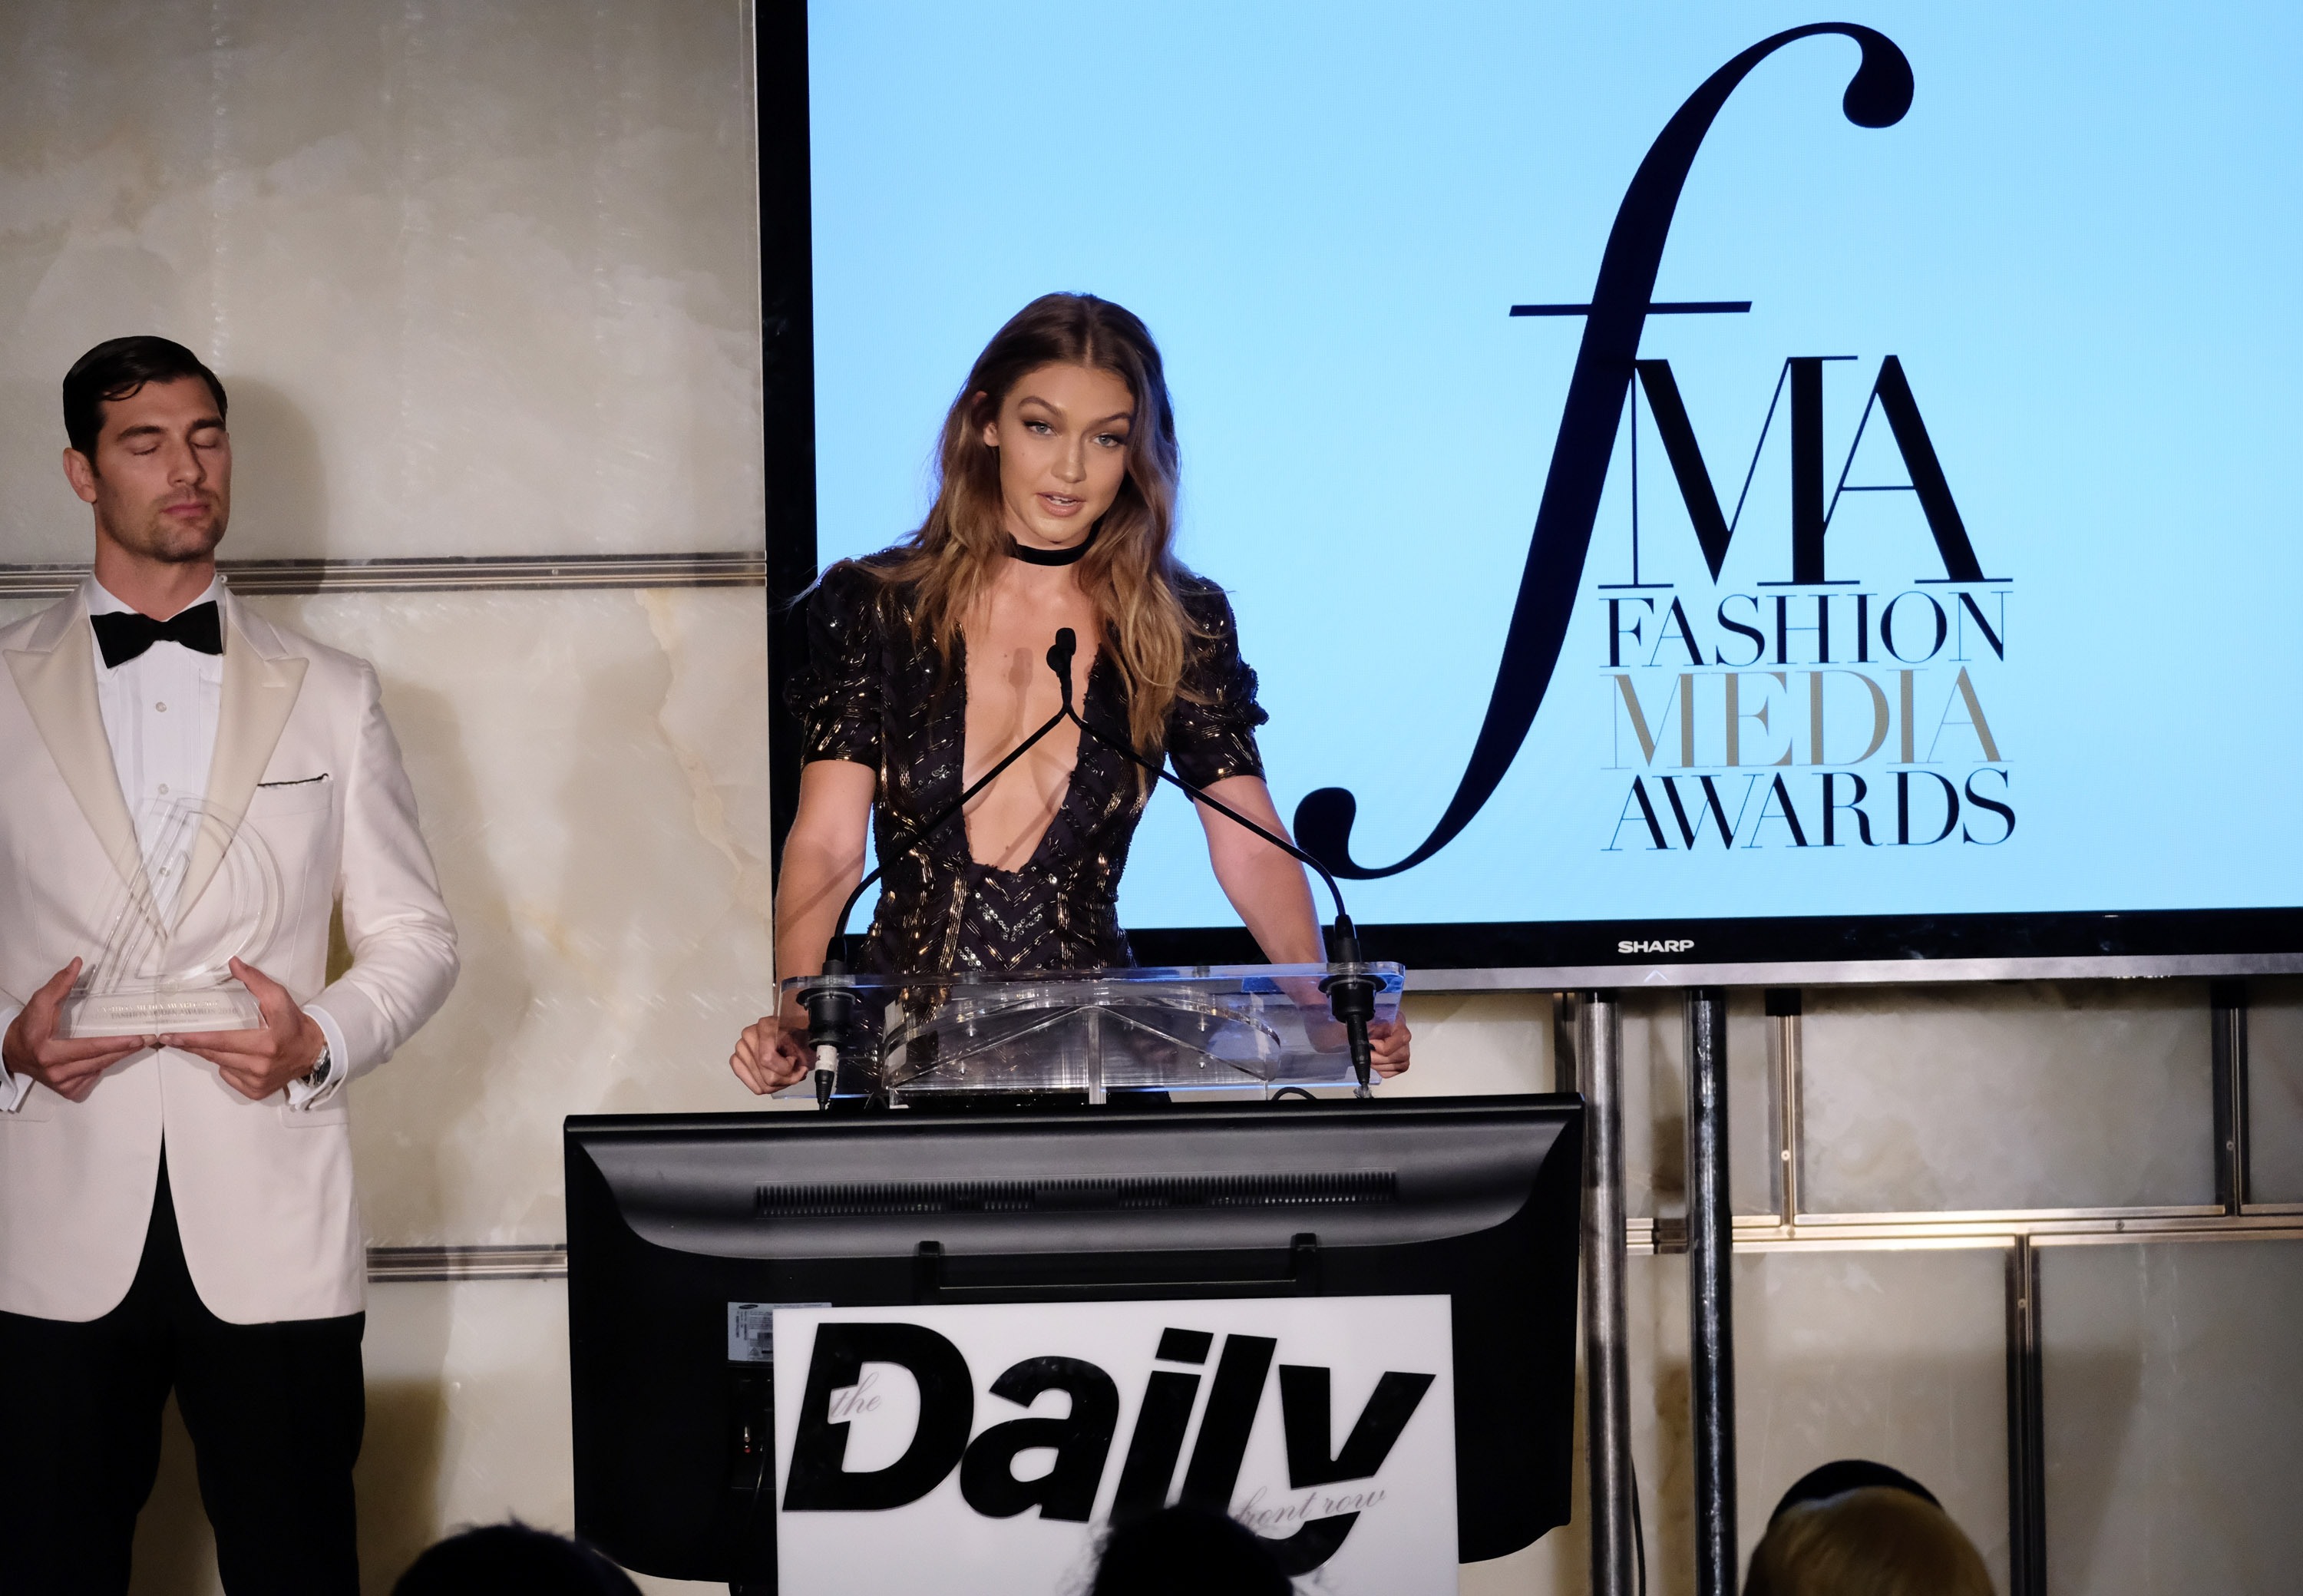 NEW YORK, NY - SEPTEMBER 08: (EXCLUSIVE ACCESS, SPECIAL RATES APPLY) Model Gigi Hadid speaks onstage during the The Daily Front Row's 4th Annual Fashion Media Awards at Park Hyatt New York on September 8, 2016 in New York City. (Photo by Larry Busacca/Getty Images)